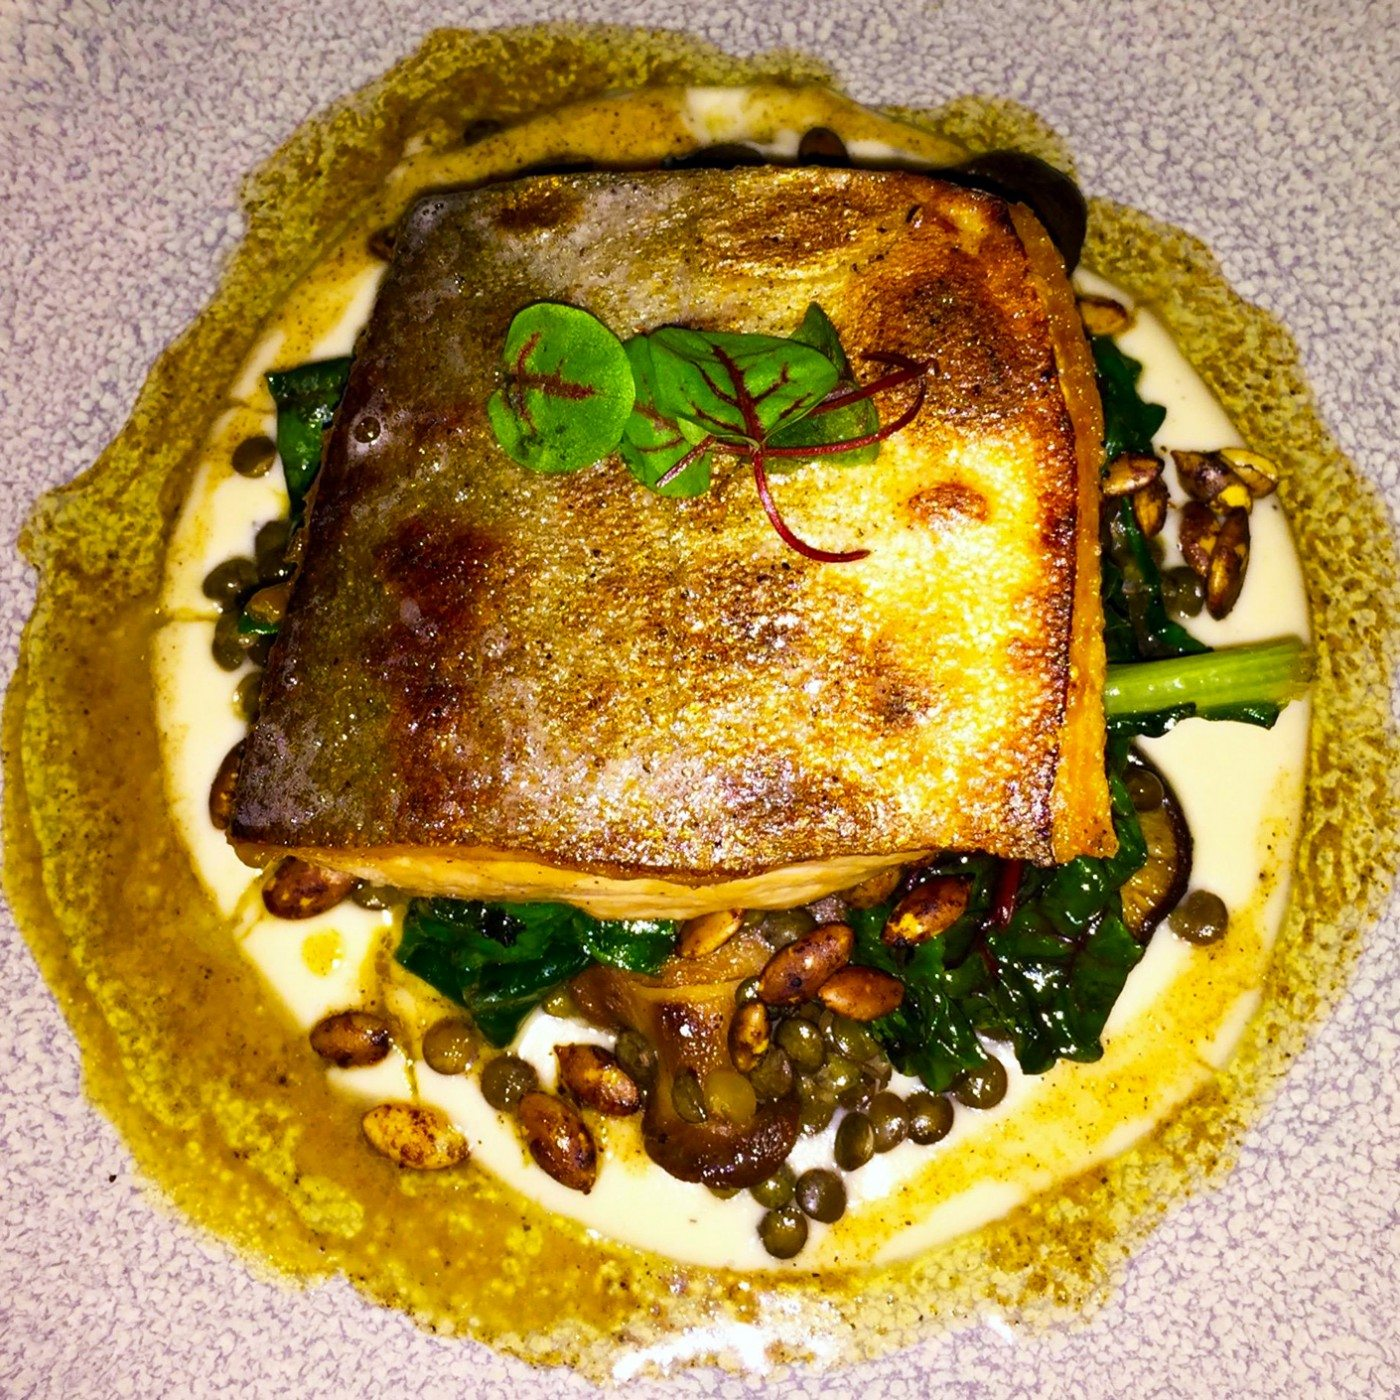 Arctic char came propped up on a hash of lentils, roasted sunchokes, shiitakes and chard, set in a sunchoke puree and ringed with a brown butter-enriched vinaigrette. Photo: Anne DesBrisay